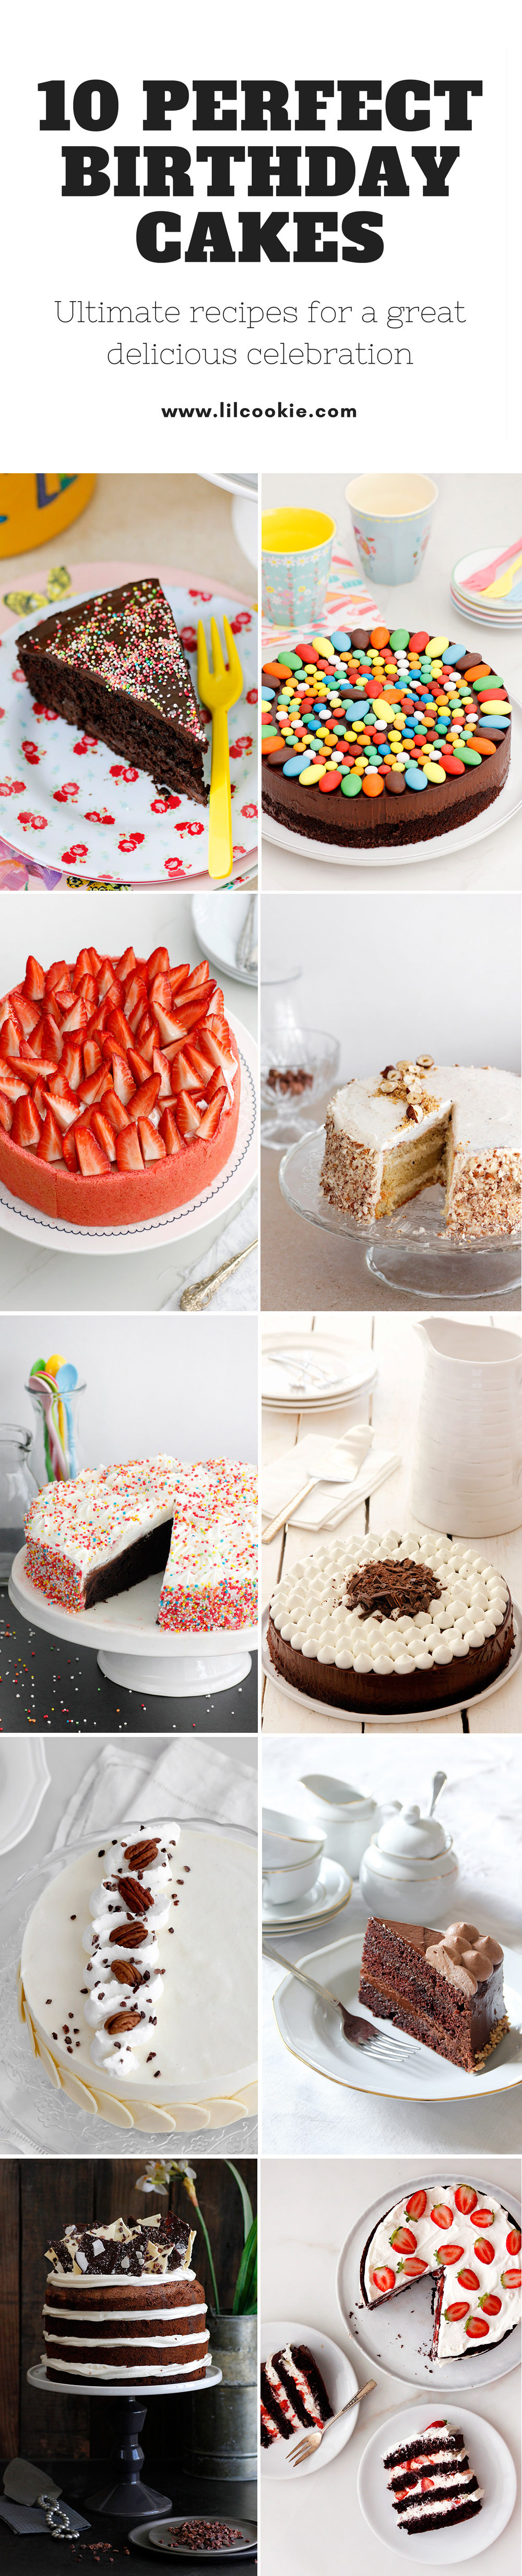 10 Perfect Birthday Cakes